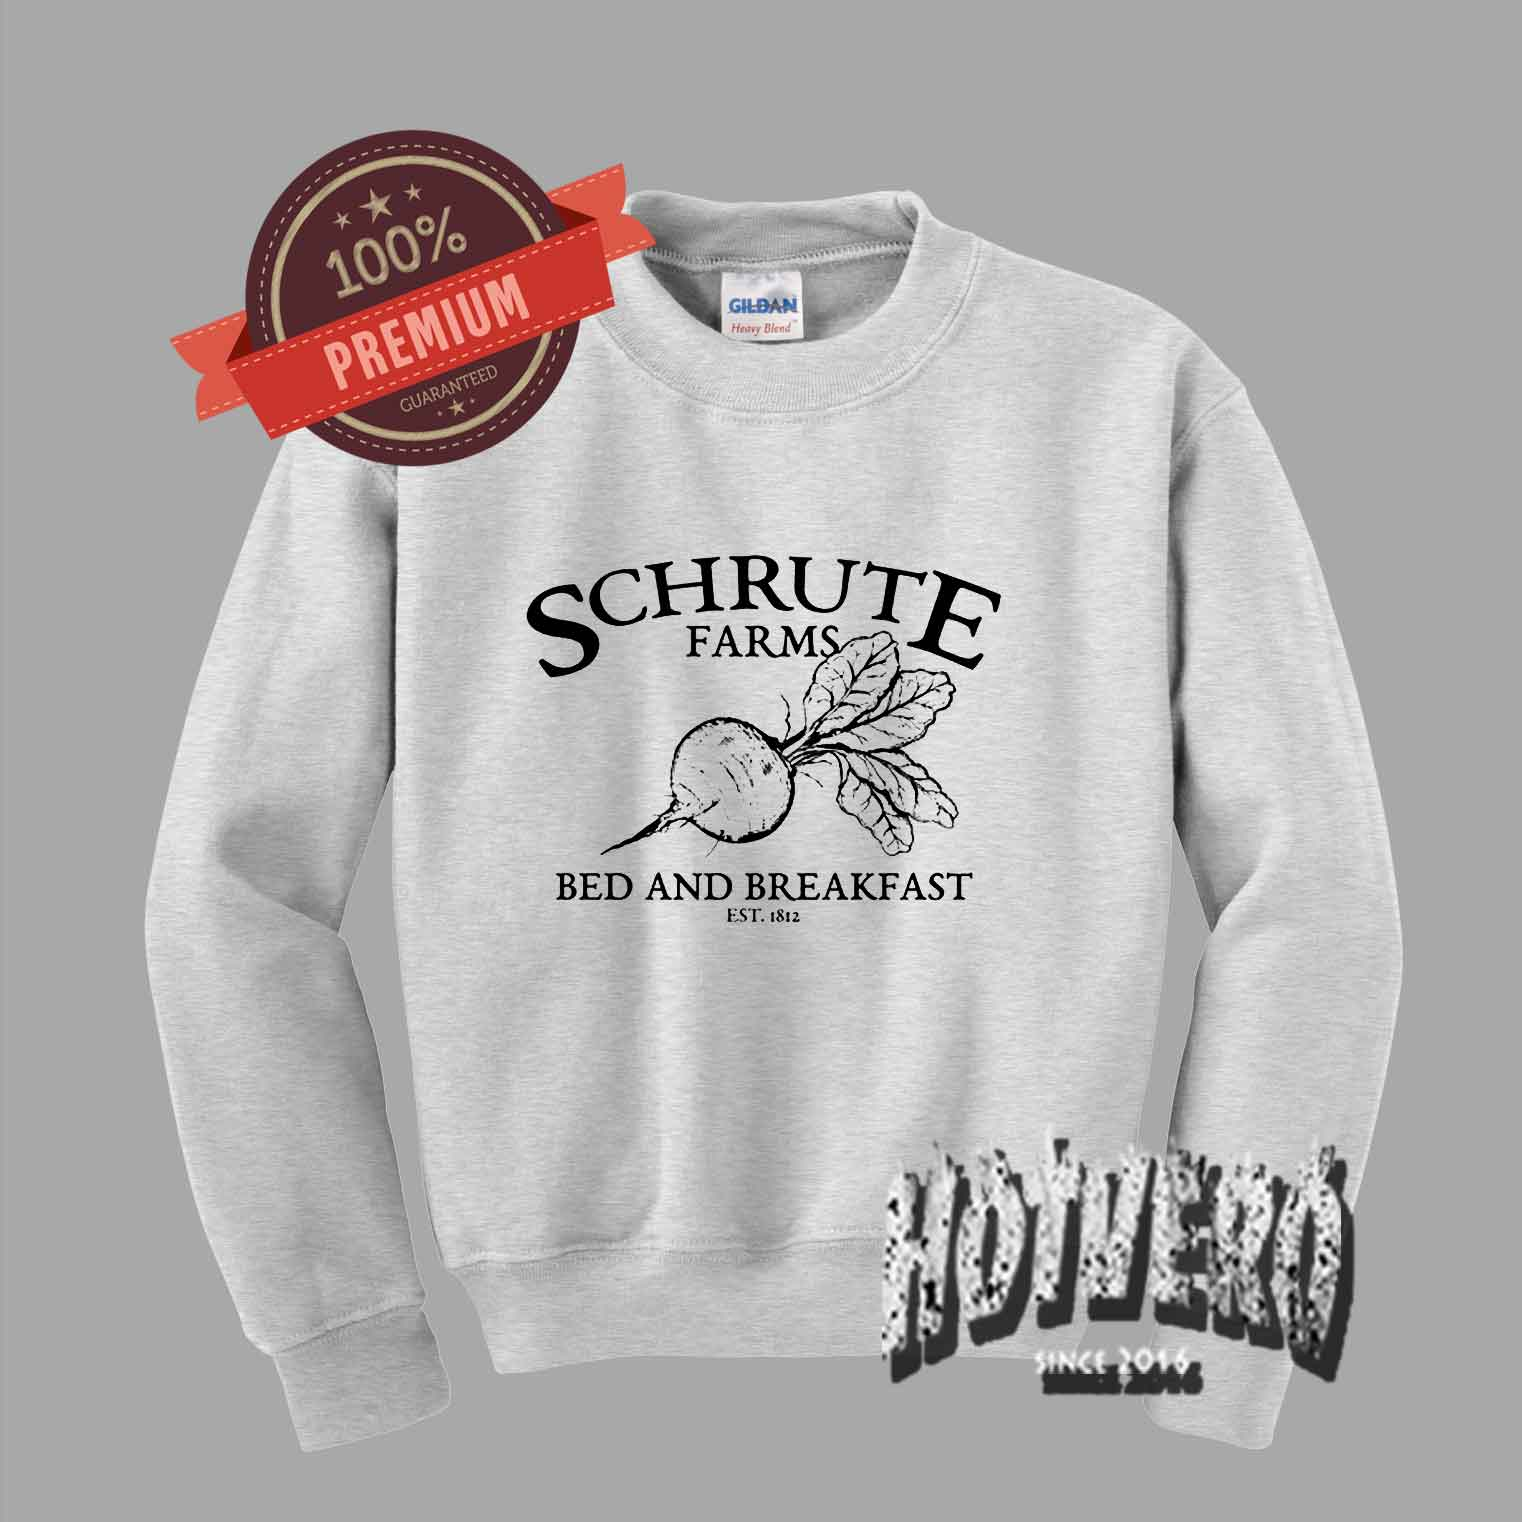 26309a364 Schrute Farms Bed And Breakfast Crewneck Sweatshirt by Hotvero.com